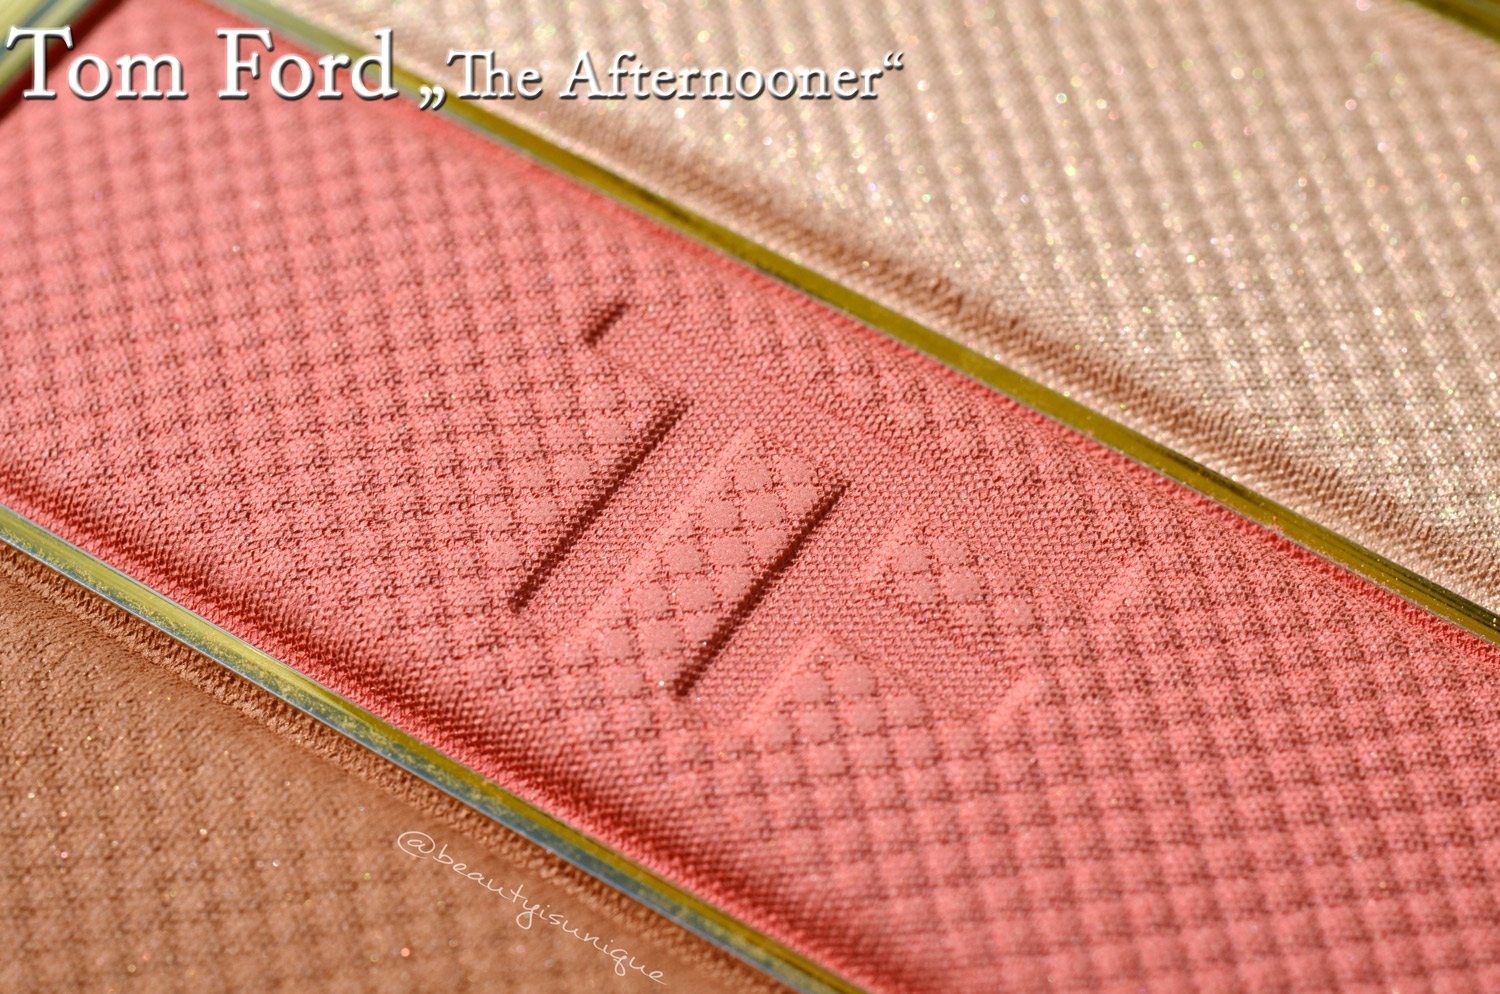 Tom-Ford-The-Afternooner-swatches